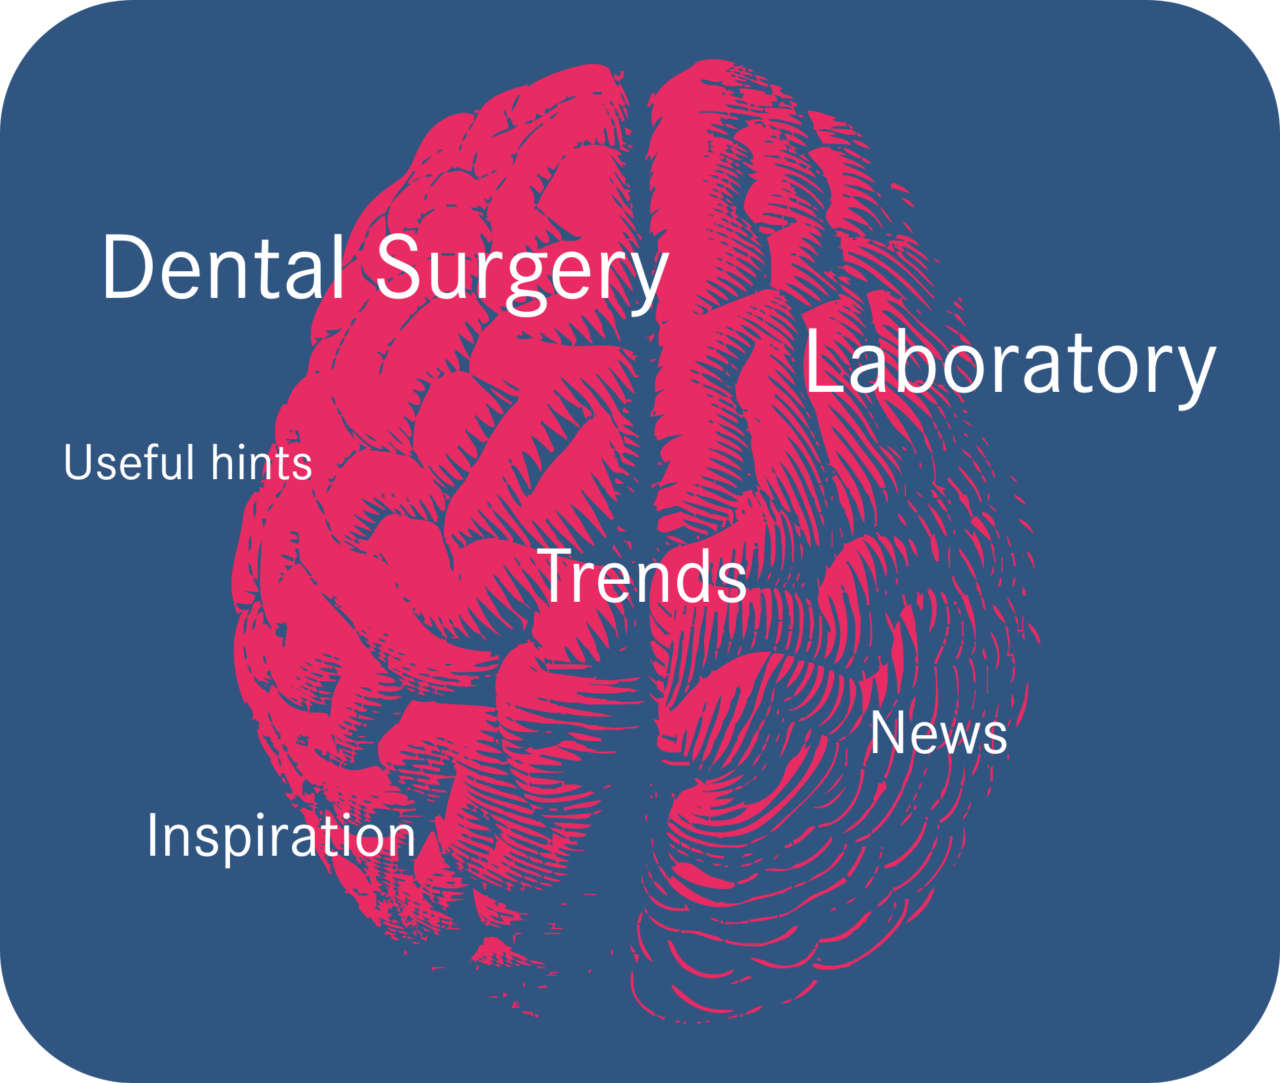 Brain, Dental Surgery, Laboratory, Useful hints, Trends, Inspiration and News